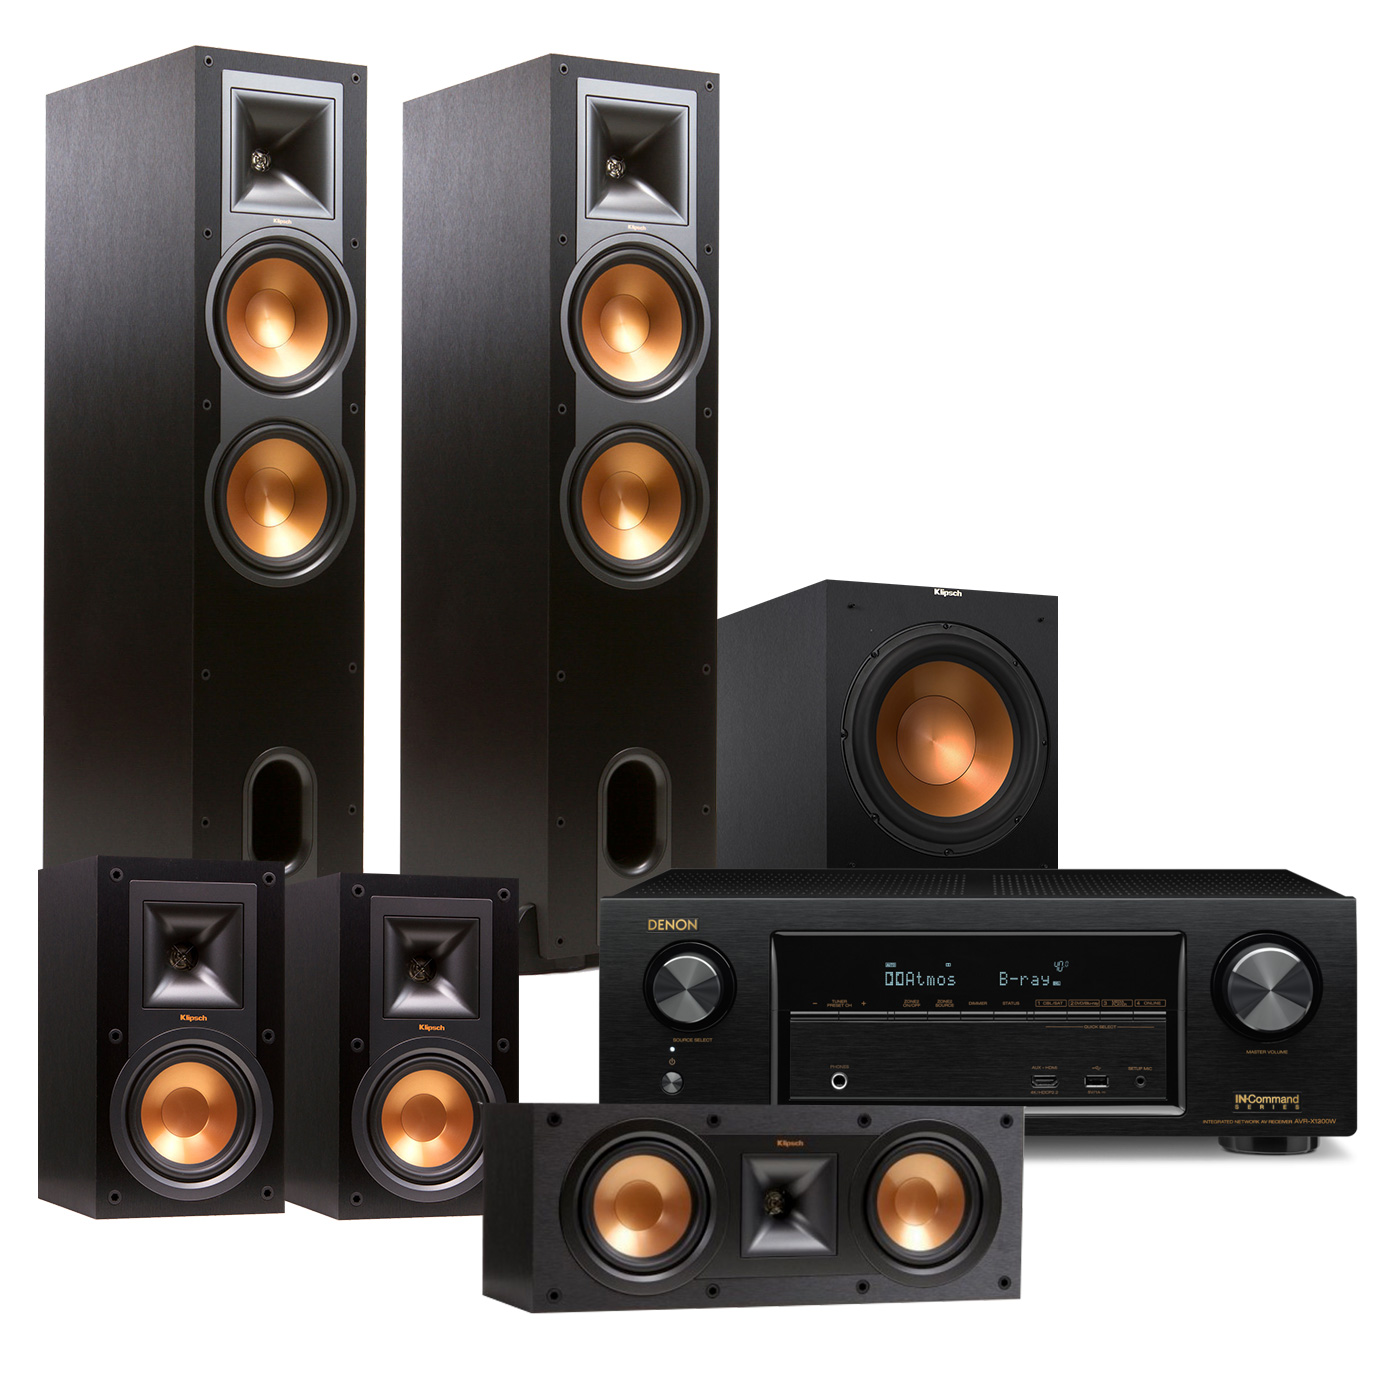 Denon AVR-X1300W 7.2 Channel Receiver with Klipsch R28F 5.1 Speaker Package by Denon